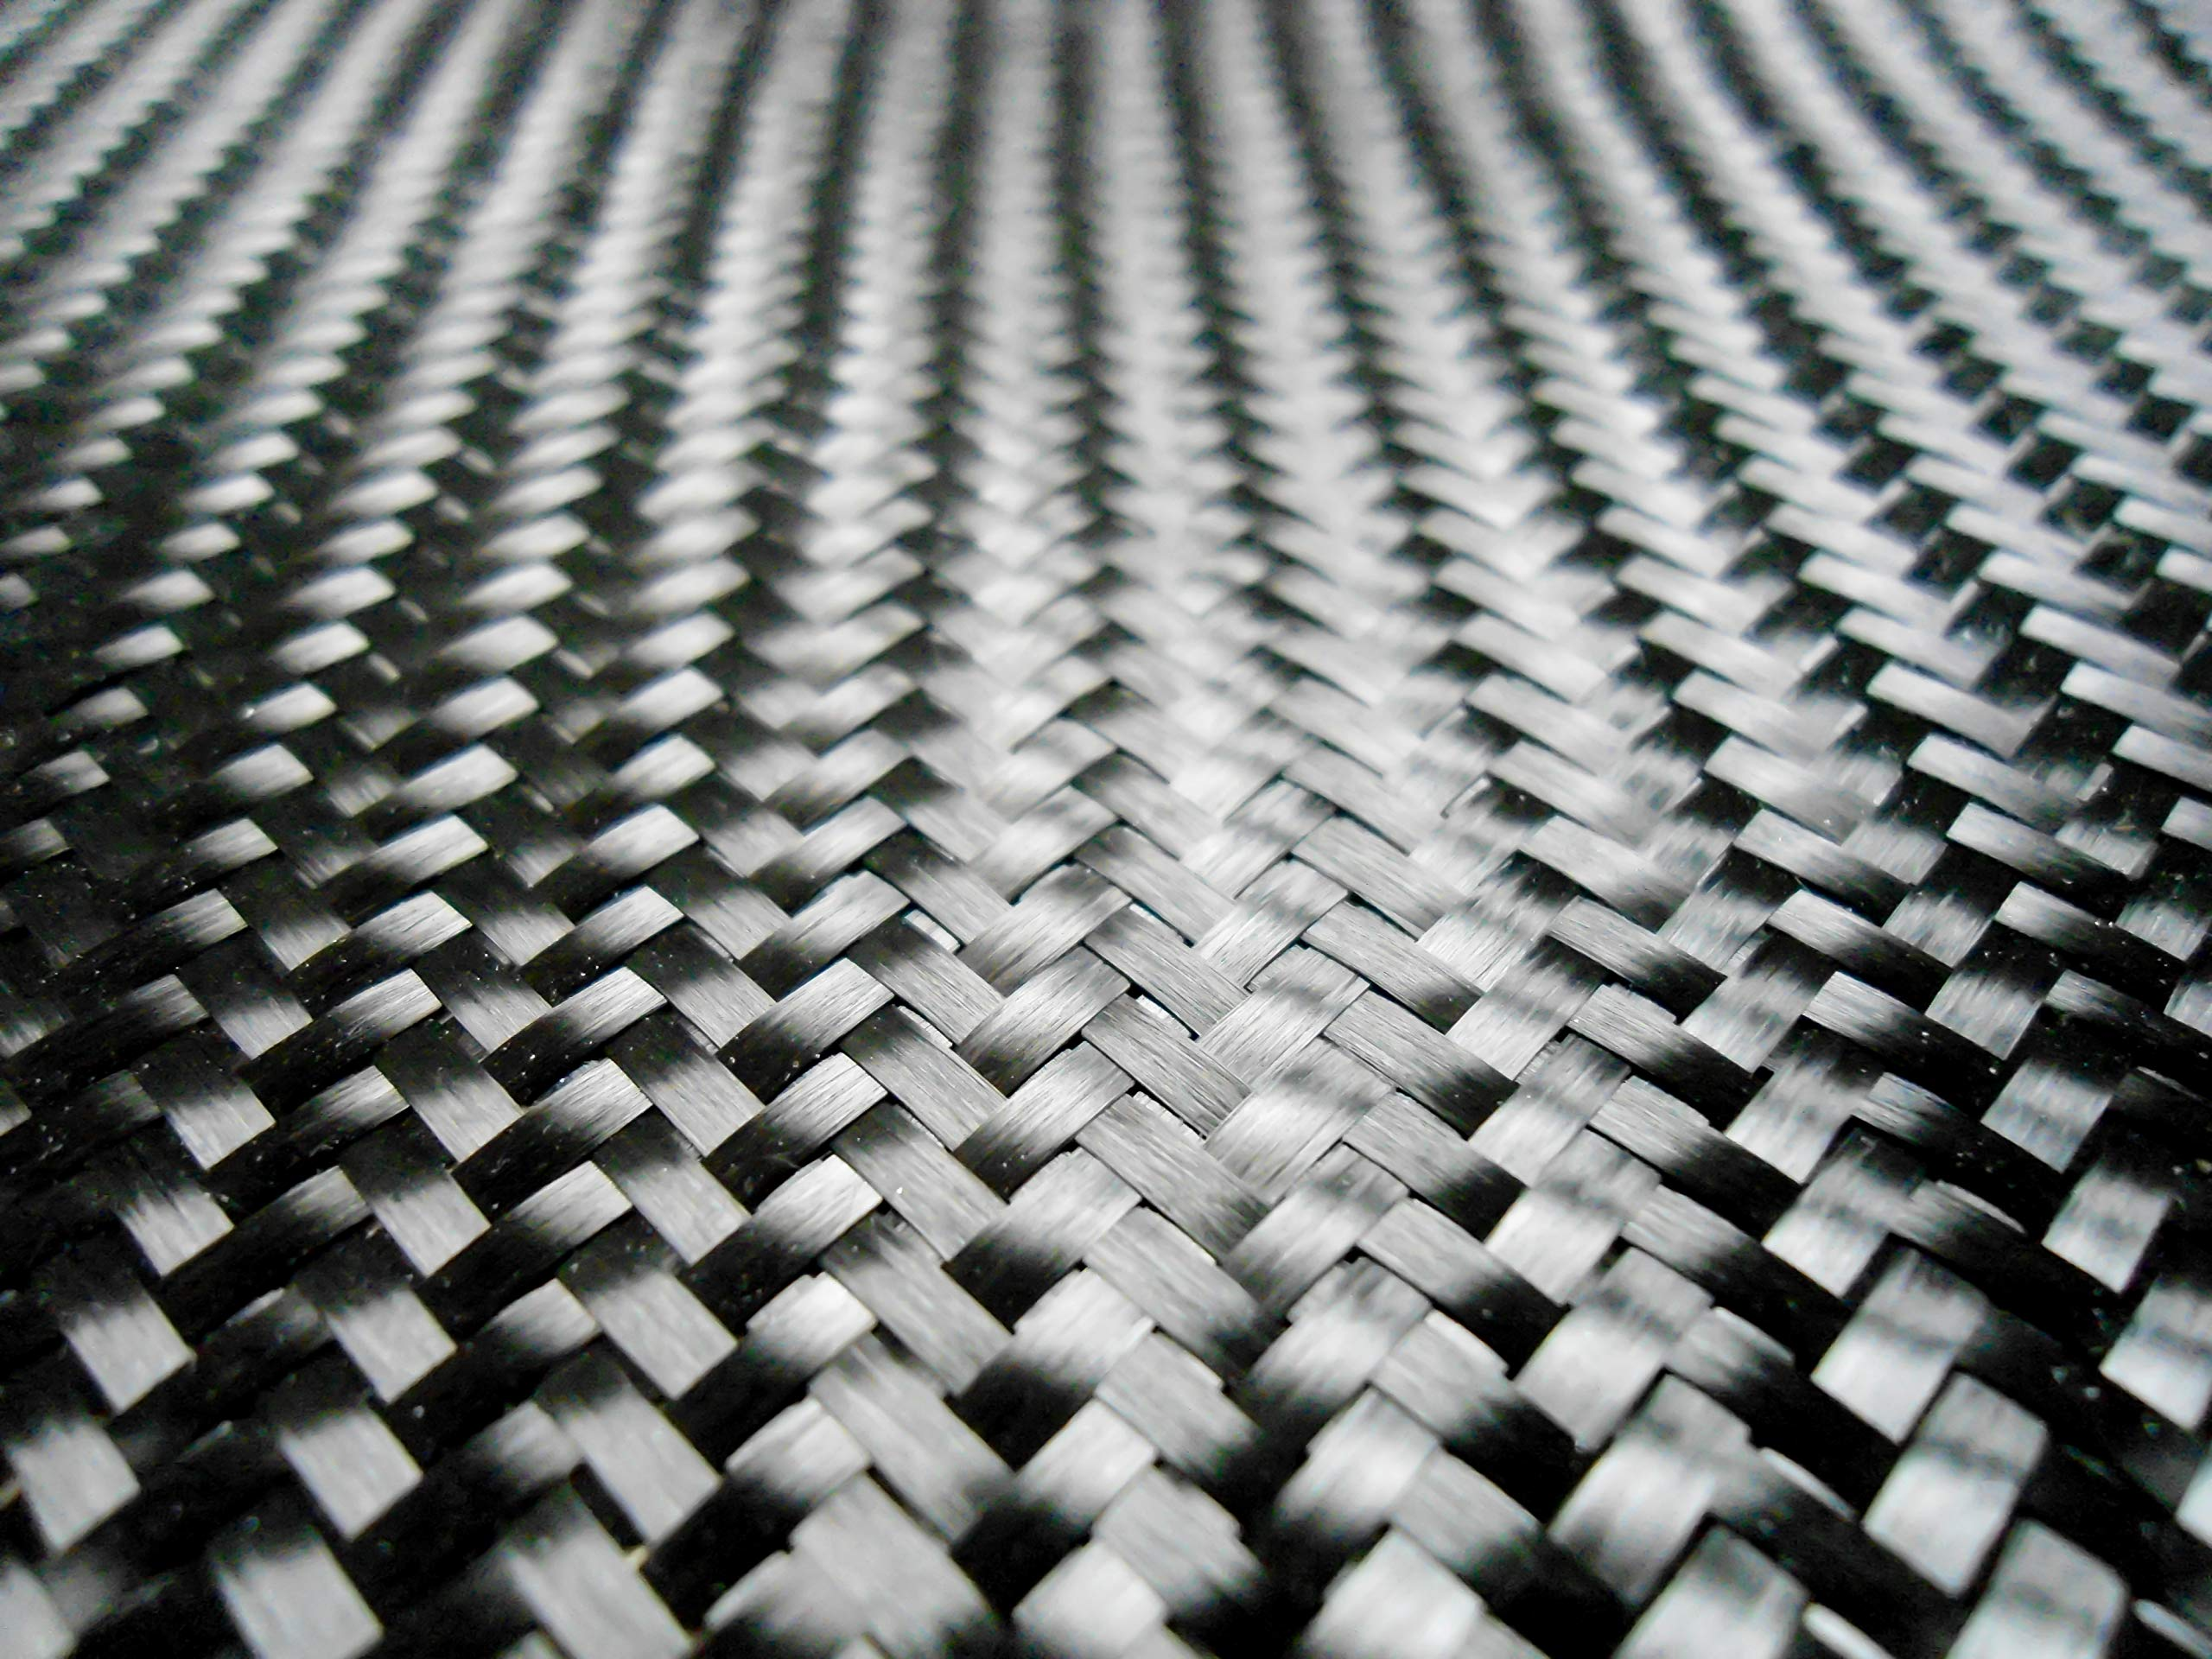 Carbon Fiber Fabric 6.2 oz 2x2 Twill x 50'' Wide - 10 Yard Long roll.